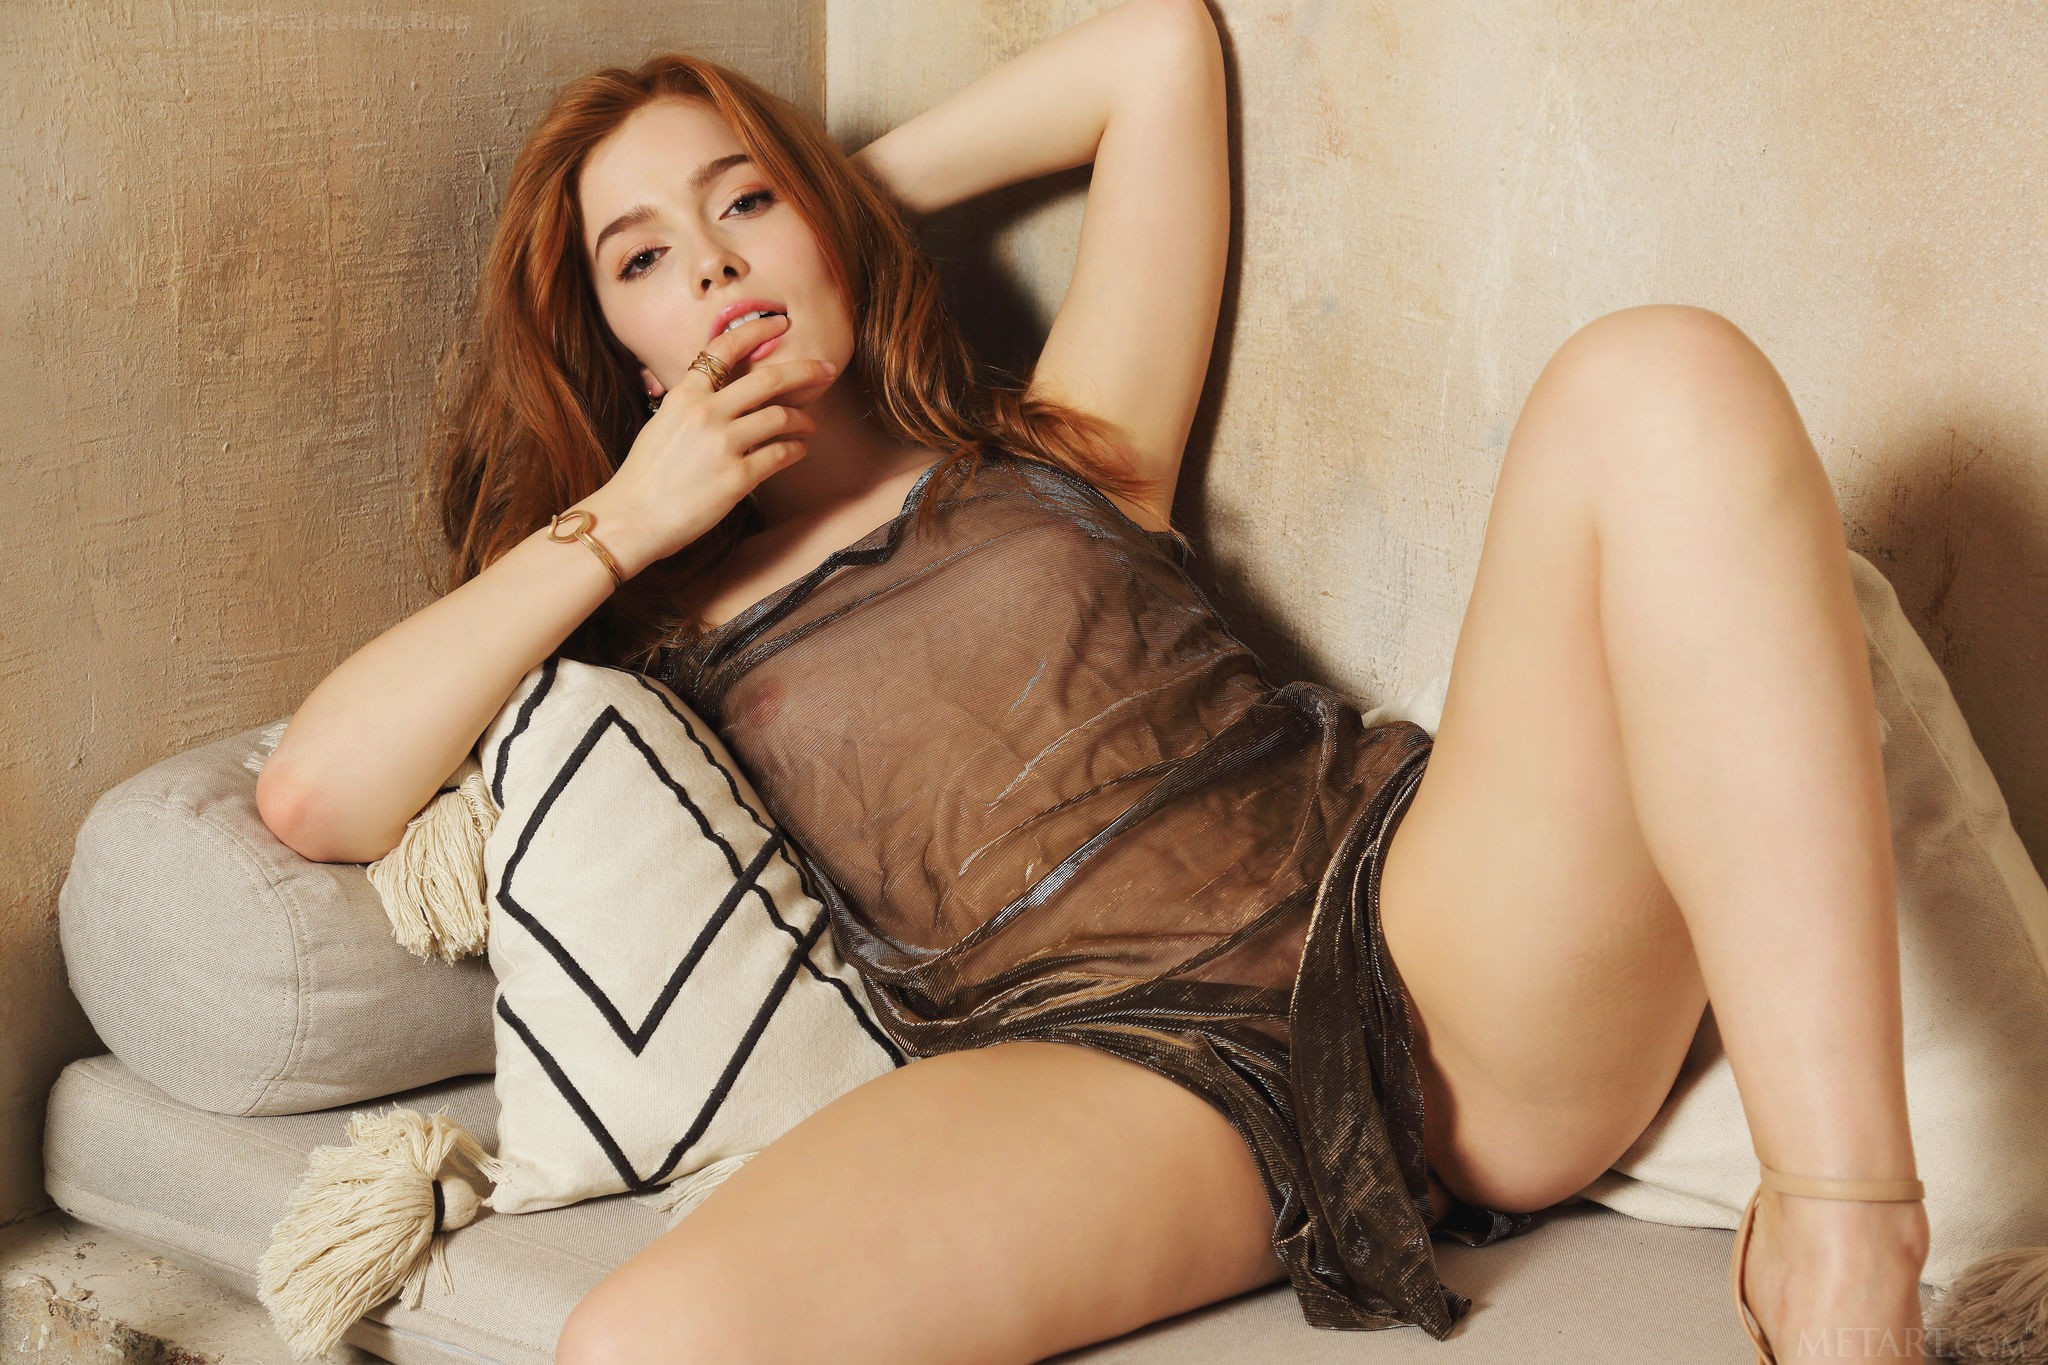 13 Jia Lissa Nude Sheer Perfection fappenings.com